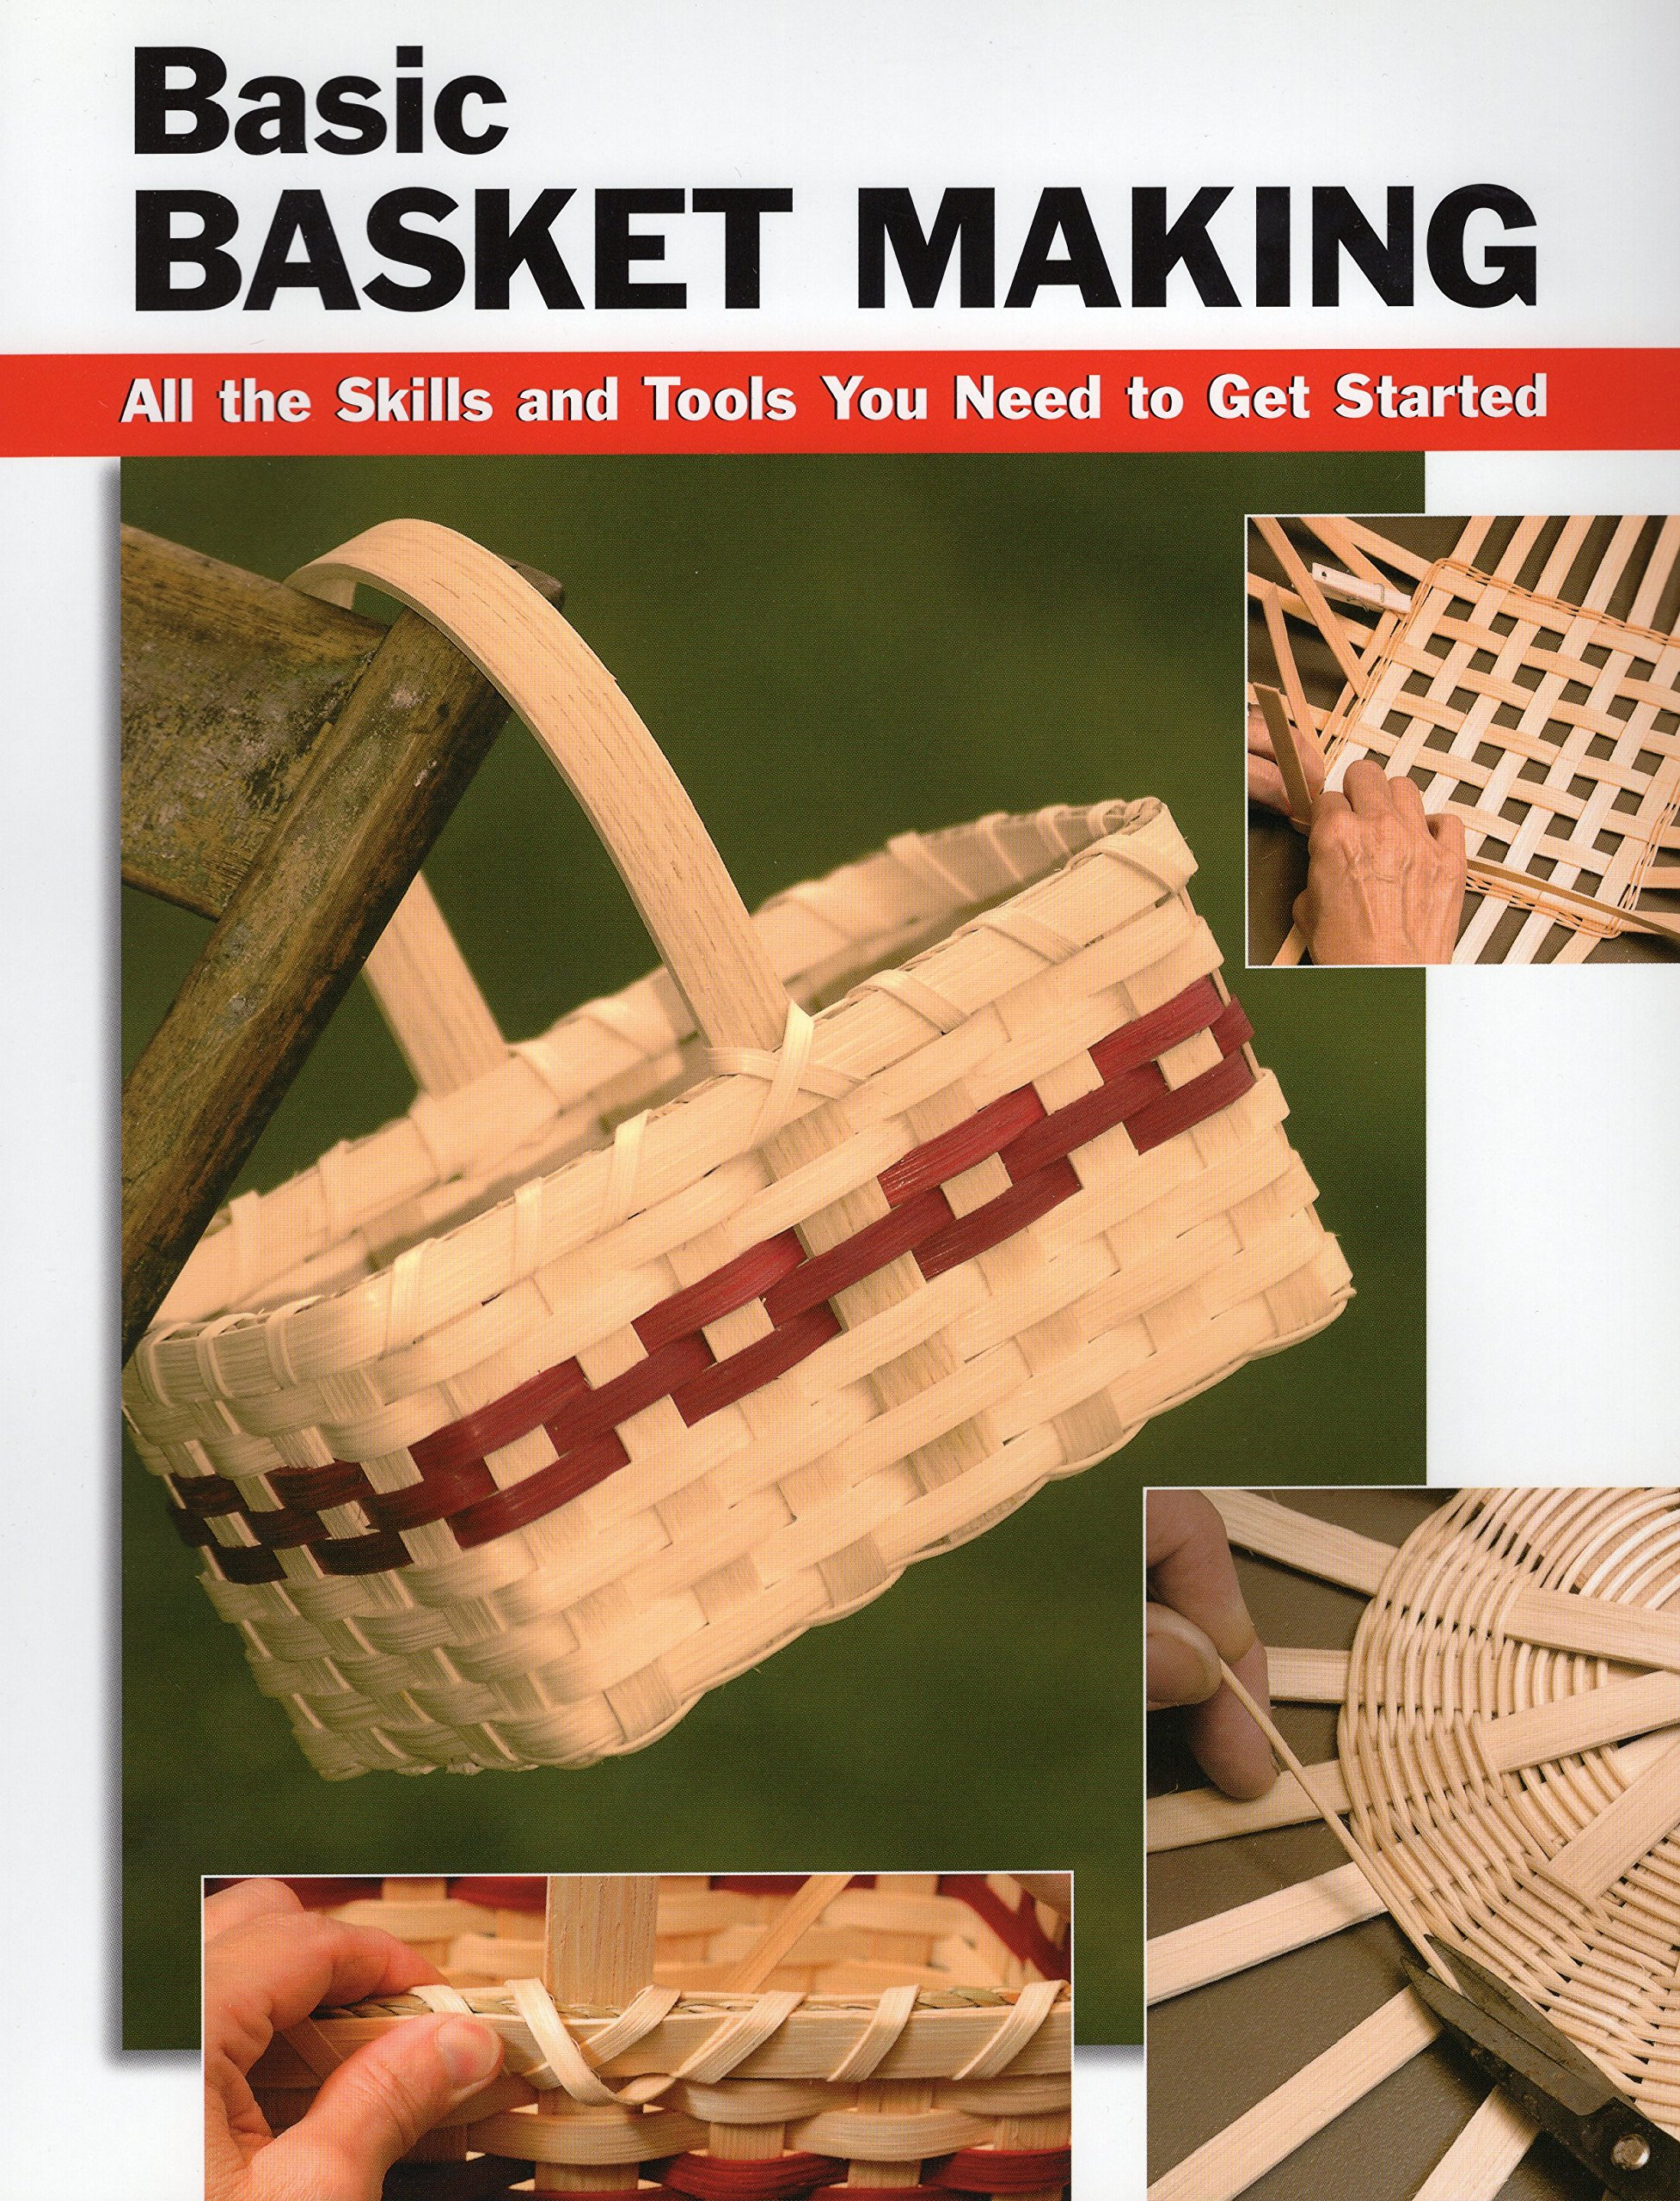 Basic Basket Making: All the Skills and Tools You Need to Get Started (How To Basics)